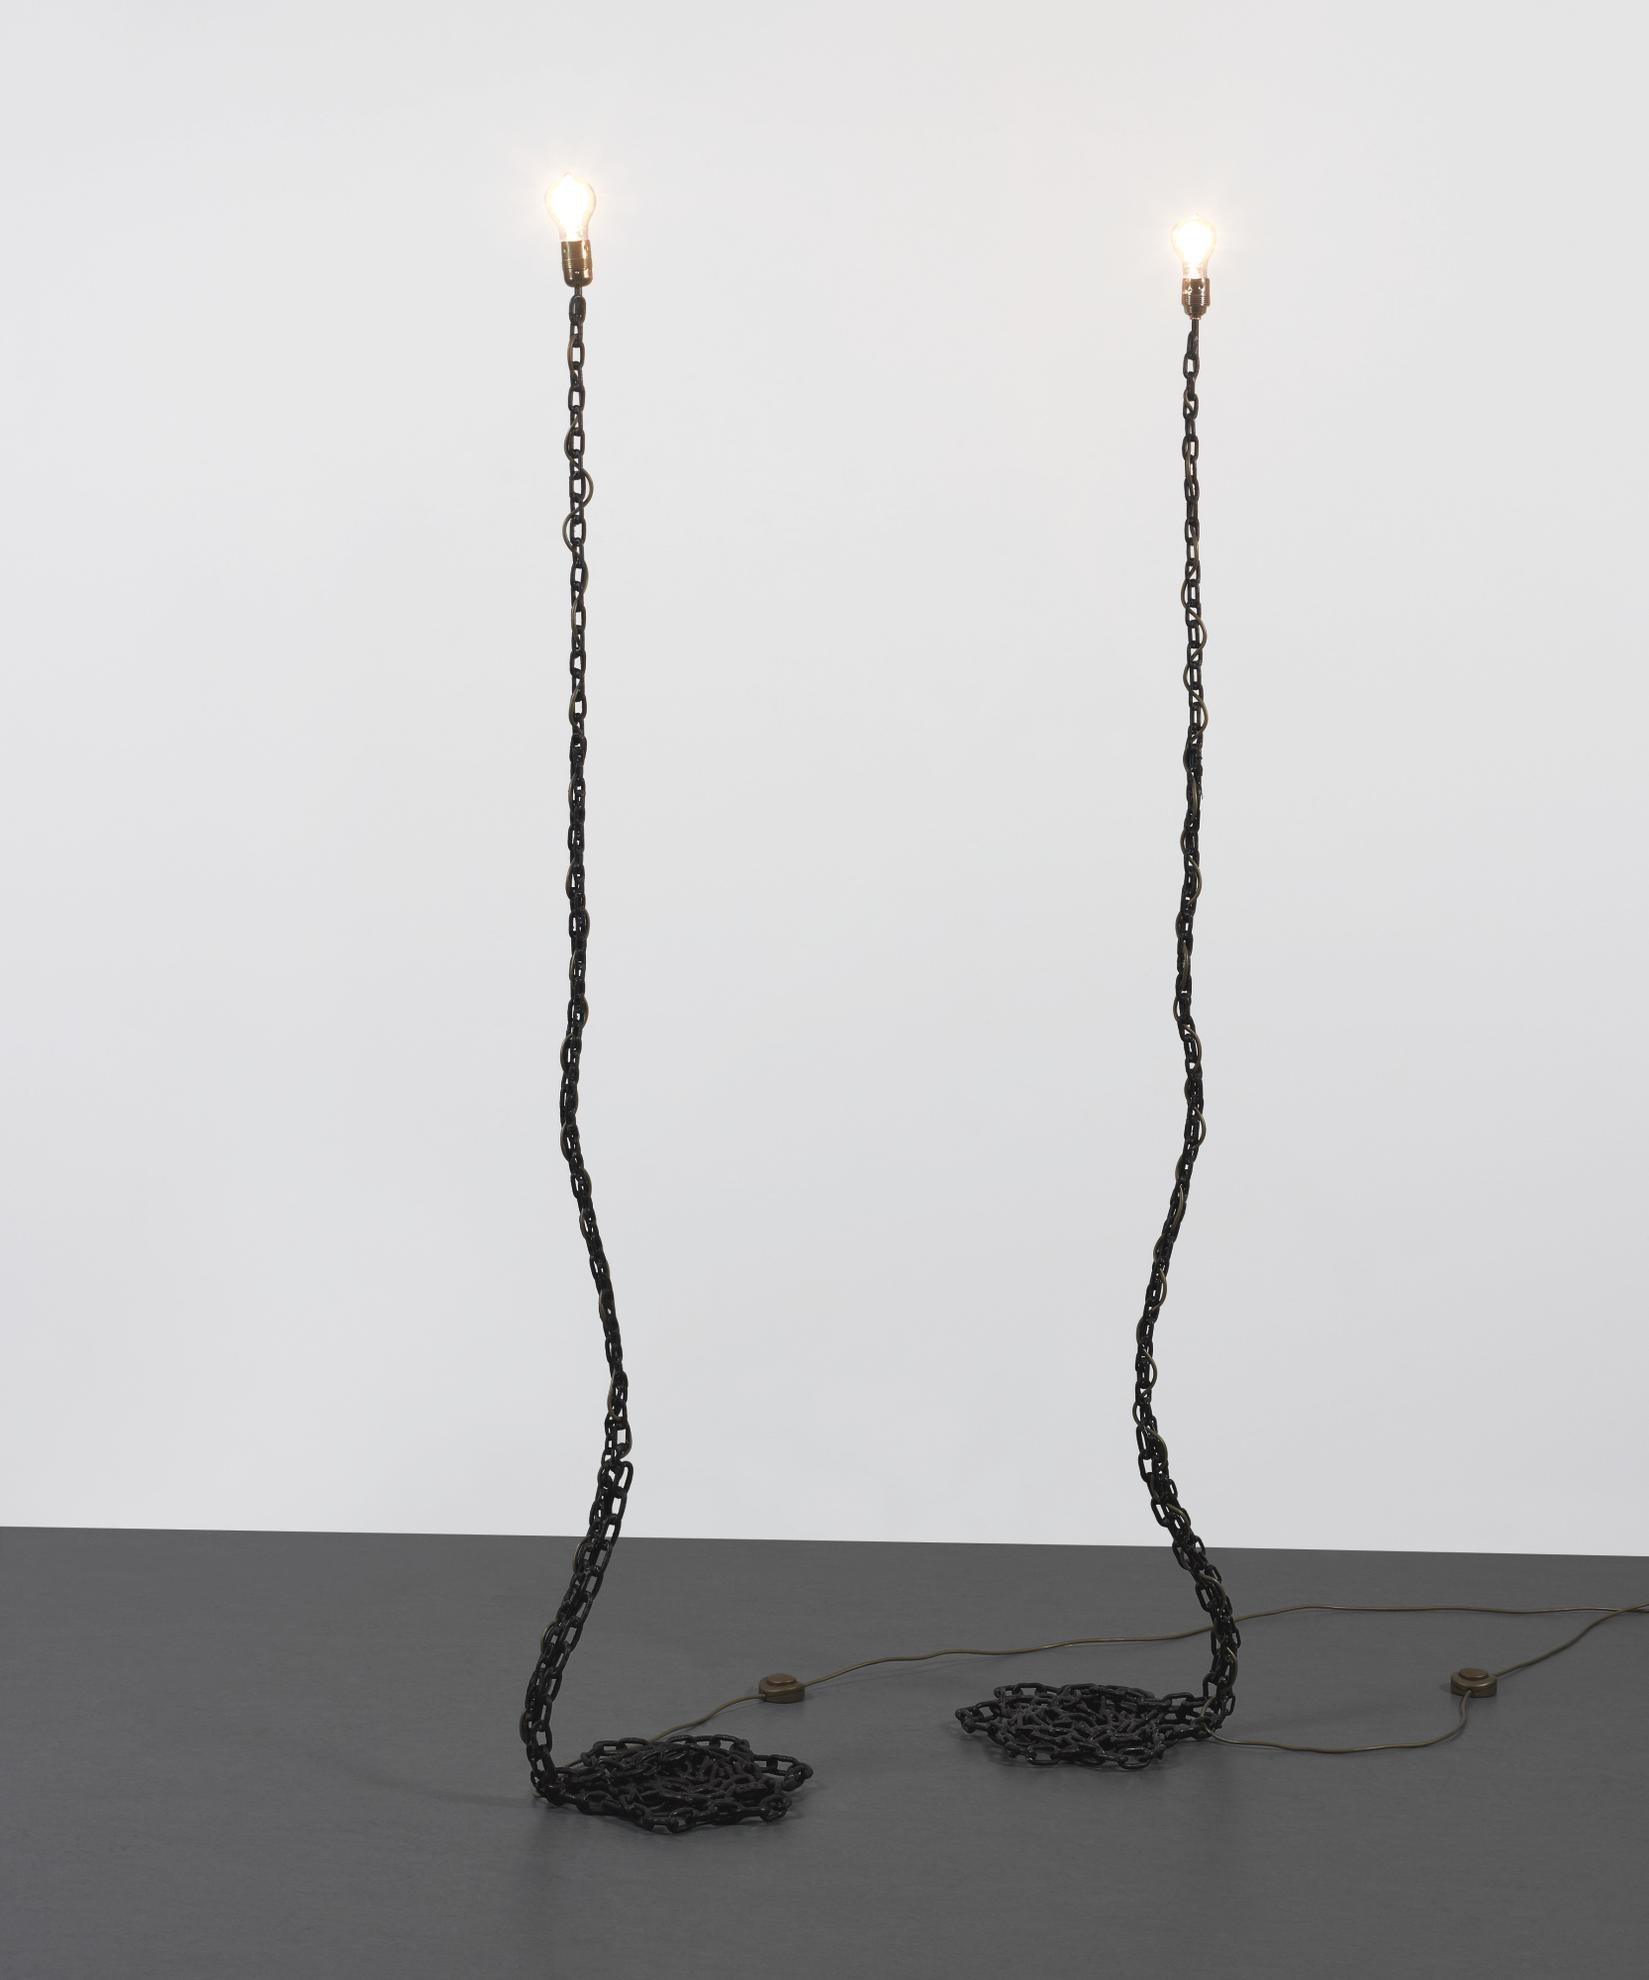 Franz West-Private-Lampe Des Kunstlers II [Two Works]-1989